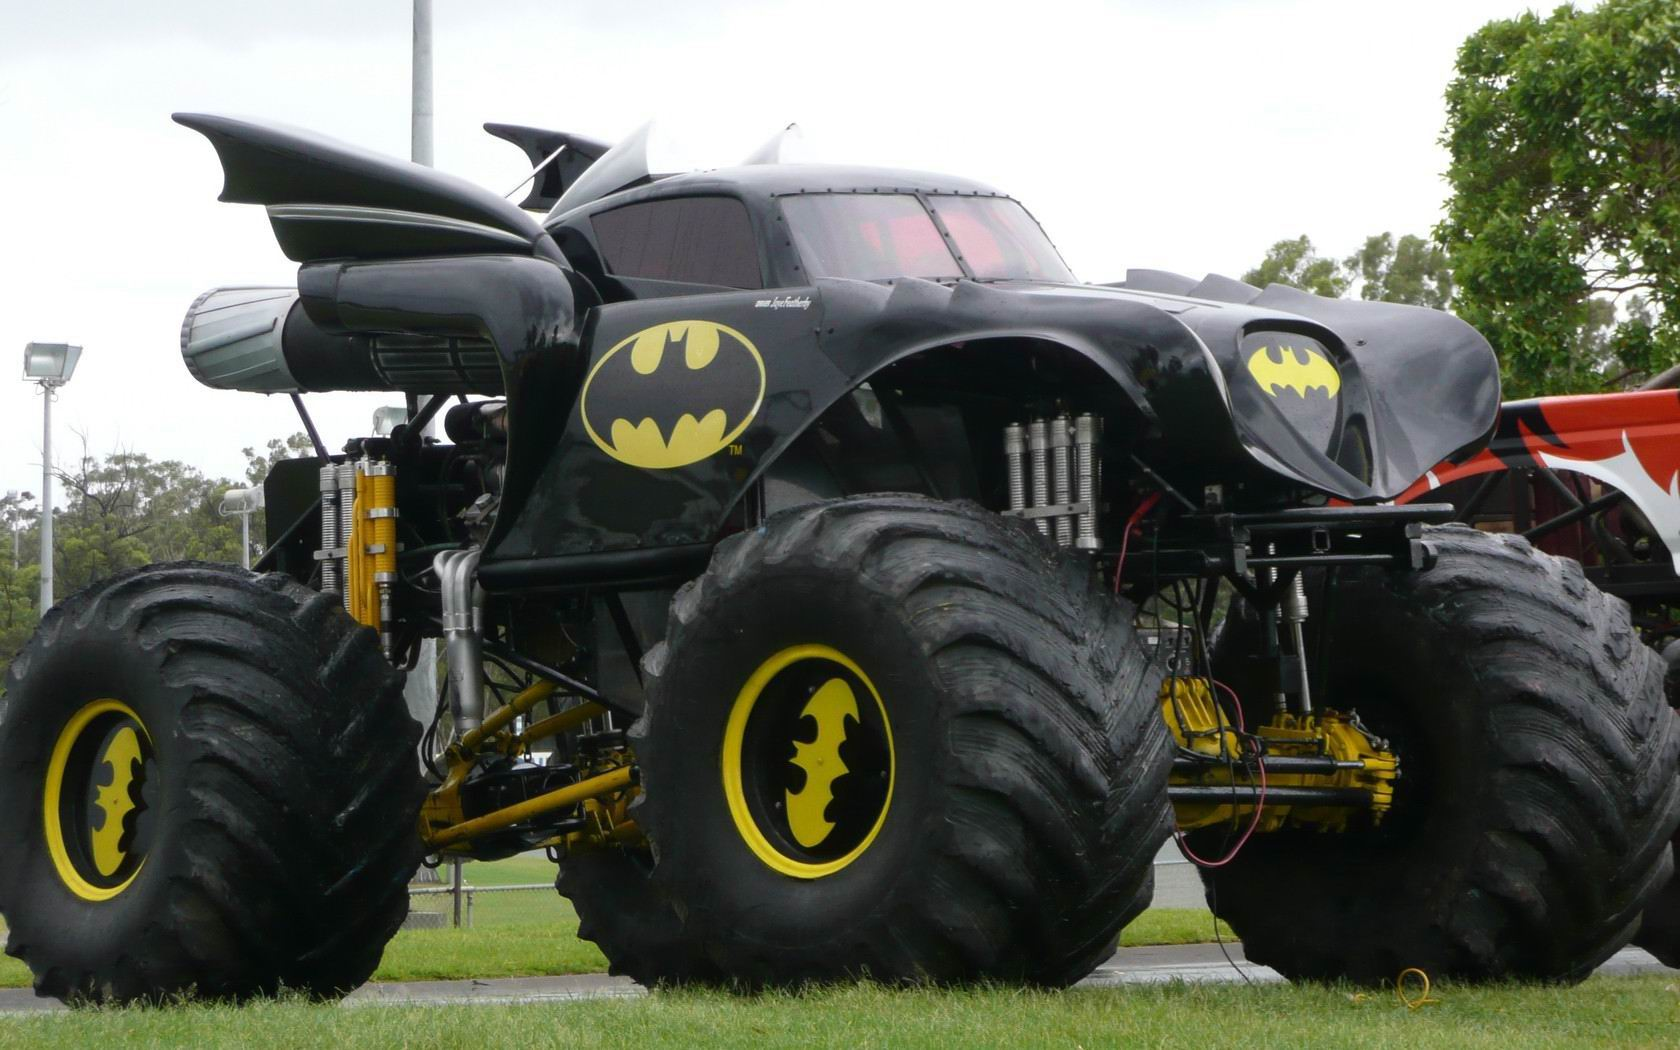 Monster truck wallpaper and background image 1680x1050 id296730 vehicles monster truck batman wallpaper voltagebd Image collections